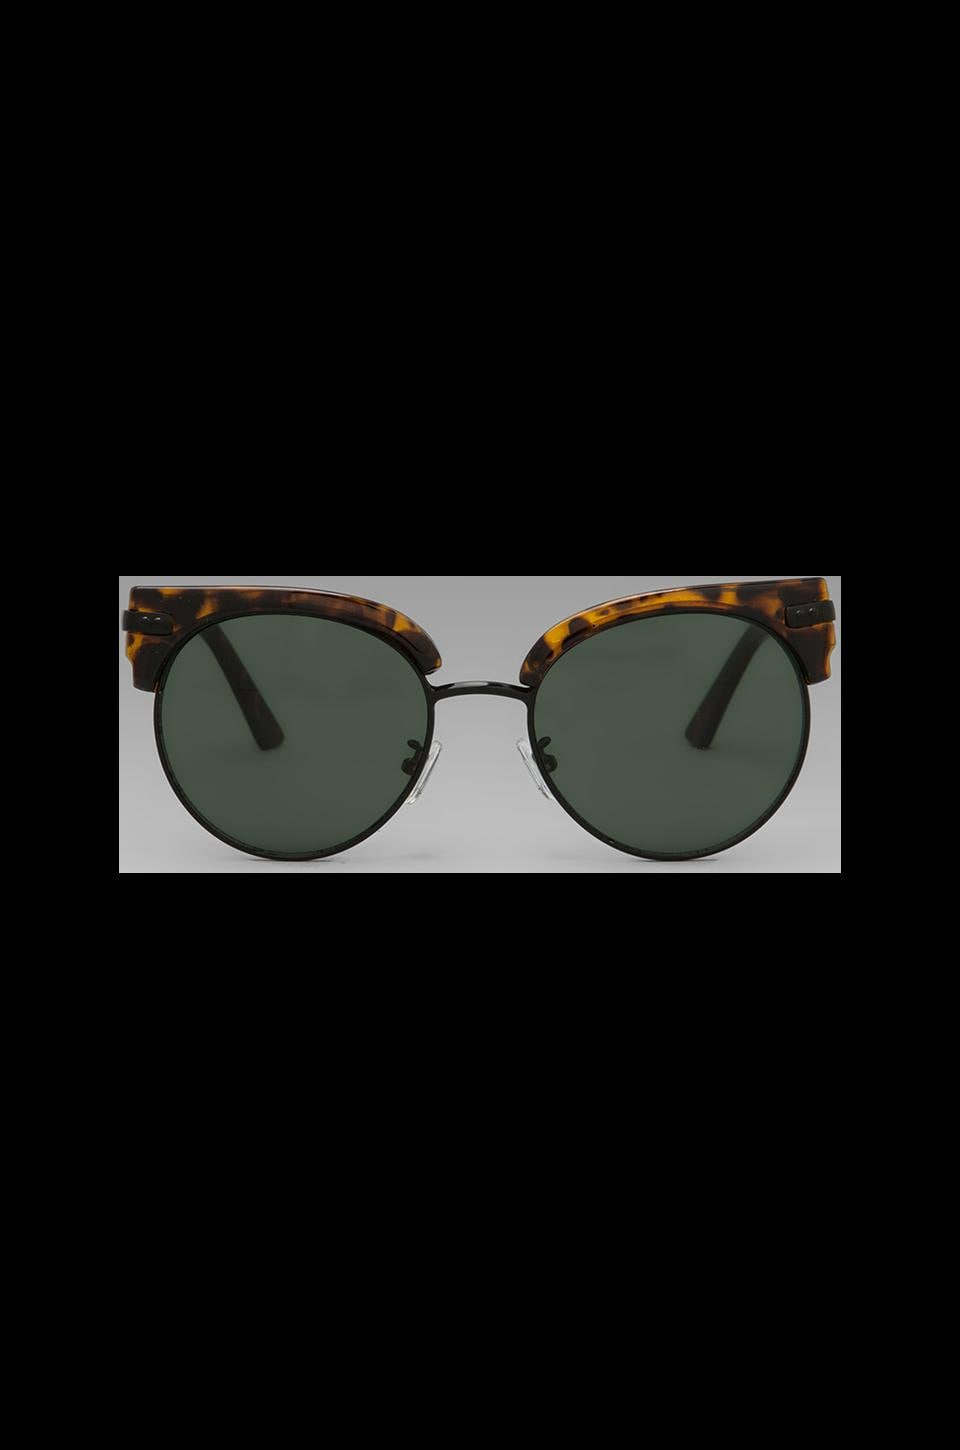 Spitfire London Weather in Tortoise Shell & Black w/ Dark Green